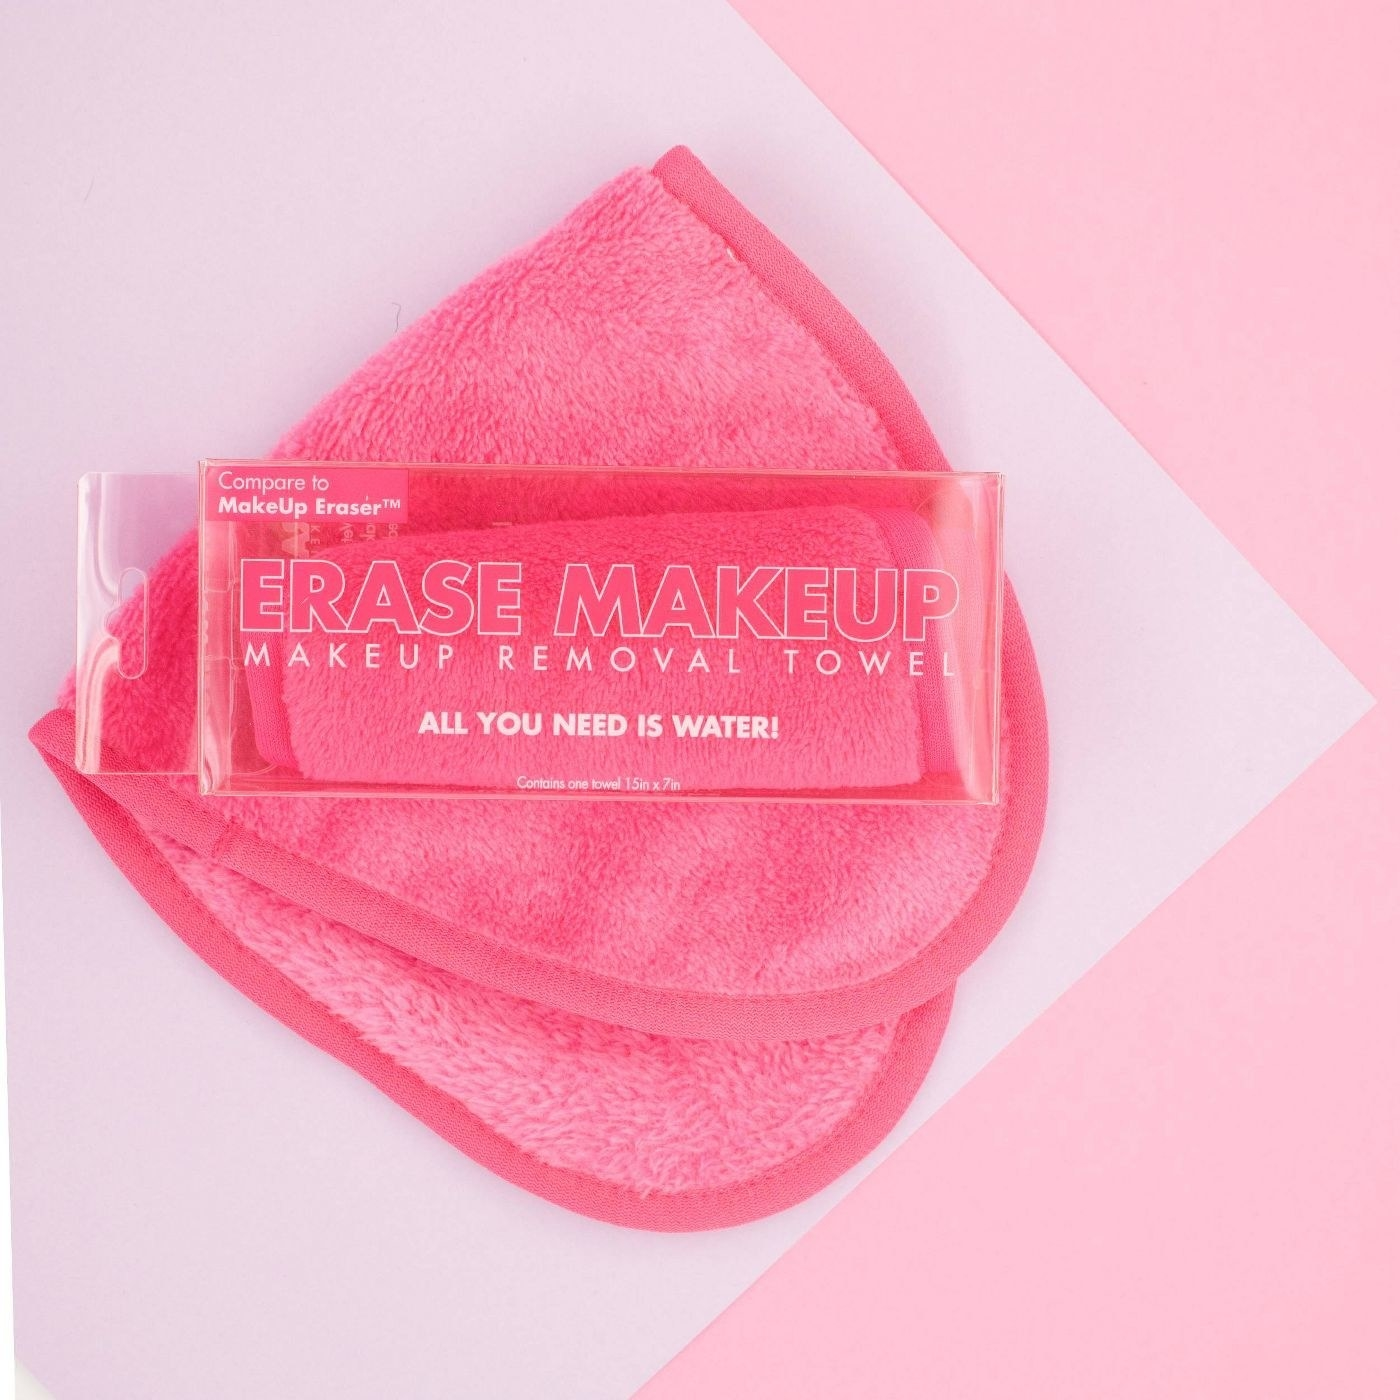 The pink makeup removal towel